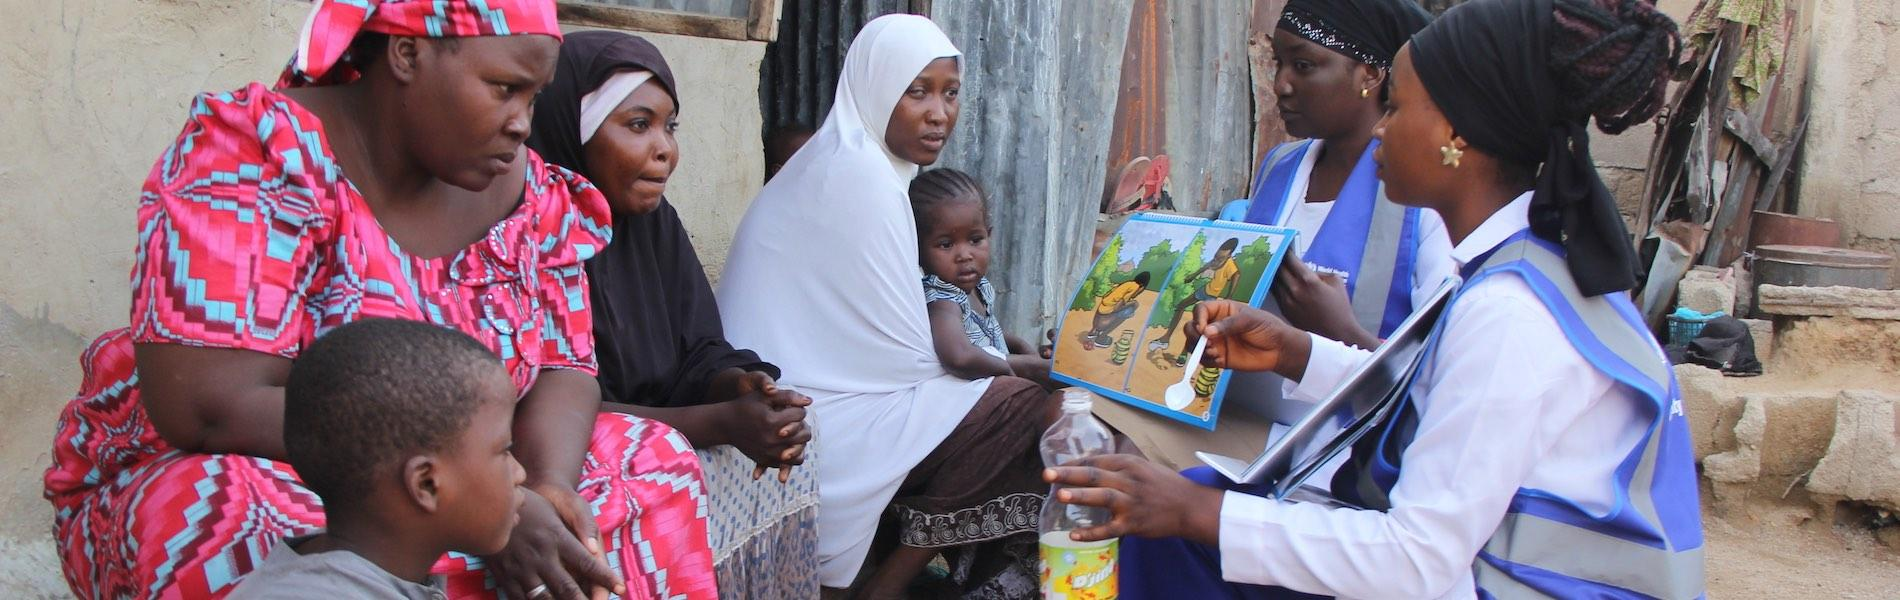 Female community health champions meeting with families in Adamawa State (Photo courtesy Chima Onuekwe, WHO Nigeria)